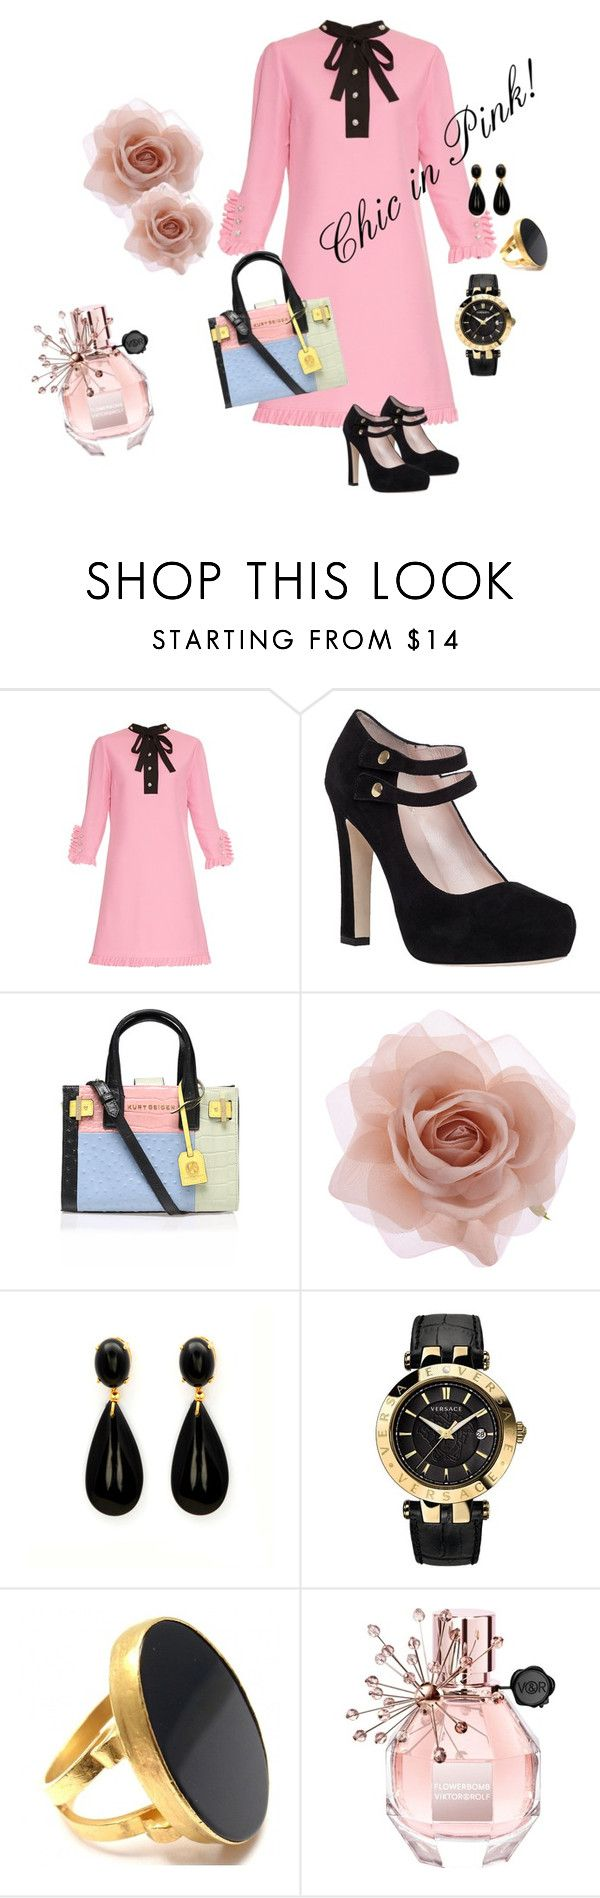 """""""Chic in Pink!"""" by marialibra on Polyvore featuring Gucci, Kate Spade, Kurt Geiger, Accessorize, Versace, Yossi Harari, Viktor & Rolf, women's clothing, women and female"""